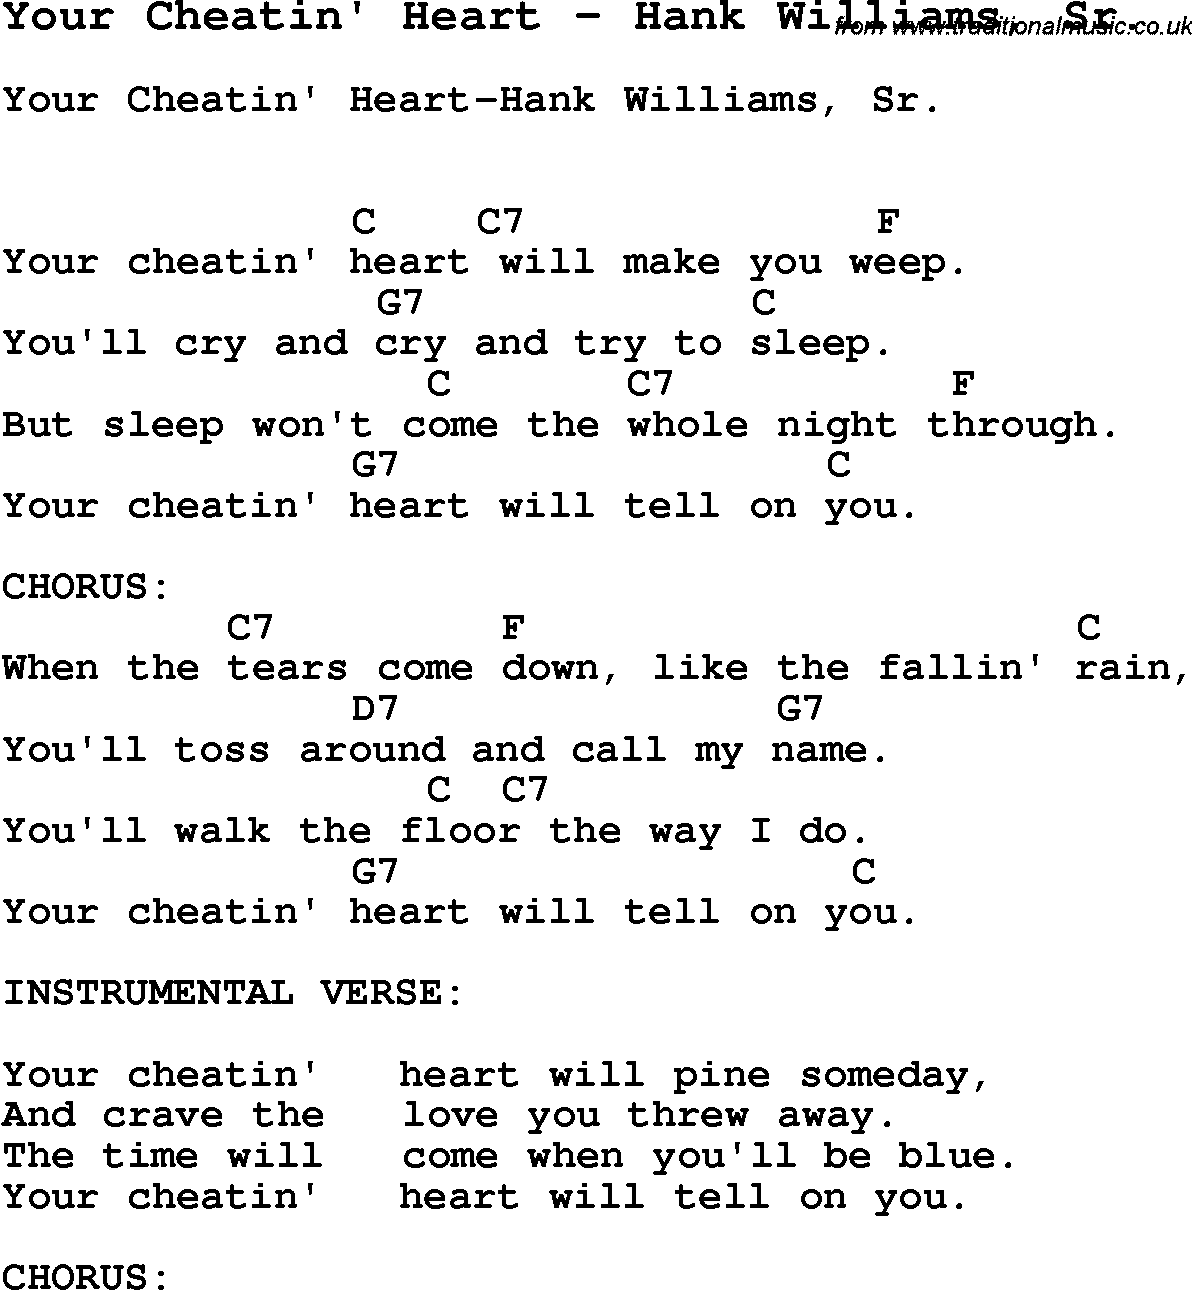 Song your cheatin heart by hank williams sr with lyrics for song your cheatin heart by hank williams sr song lyric for vocal performance plus accompaniment chords for ukulele guitar banjo etc hexwebz Choice Image